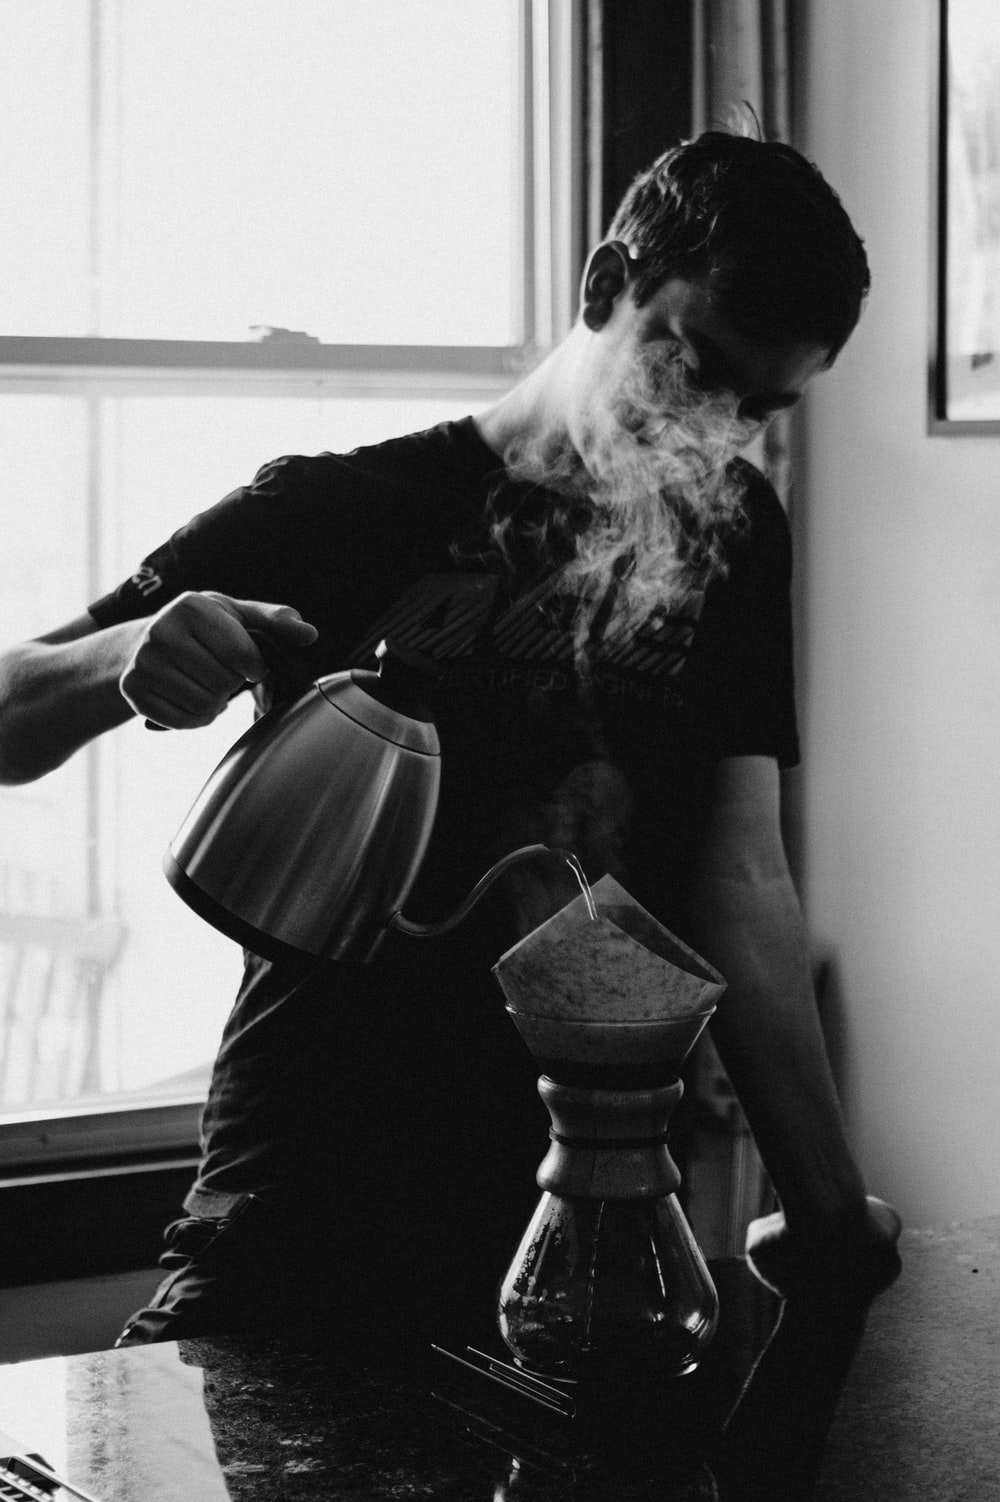 grayscale photography of man holding kettle